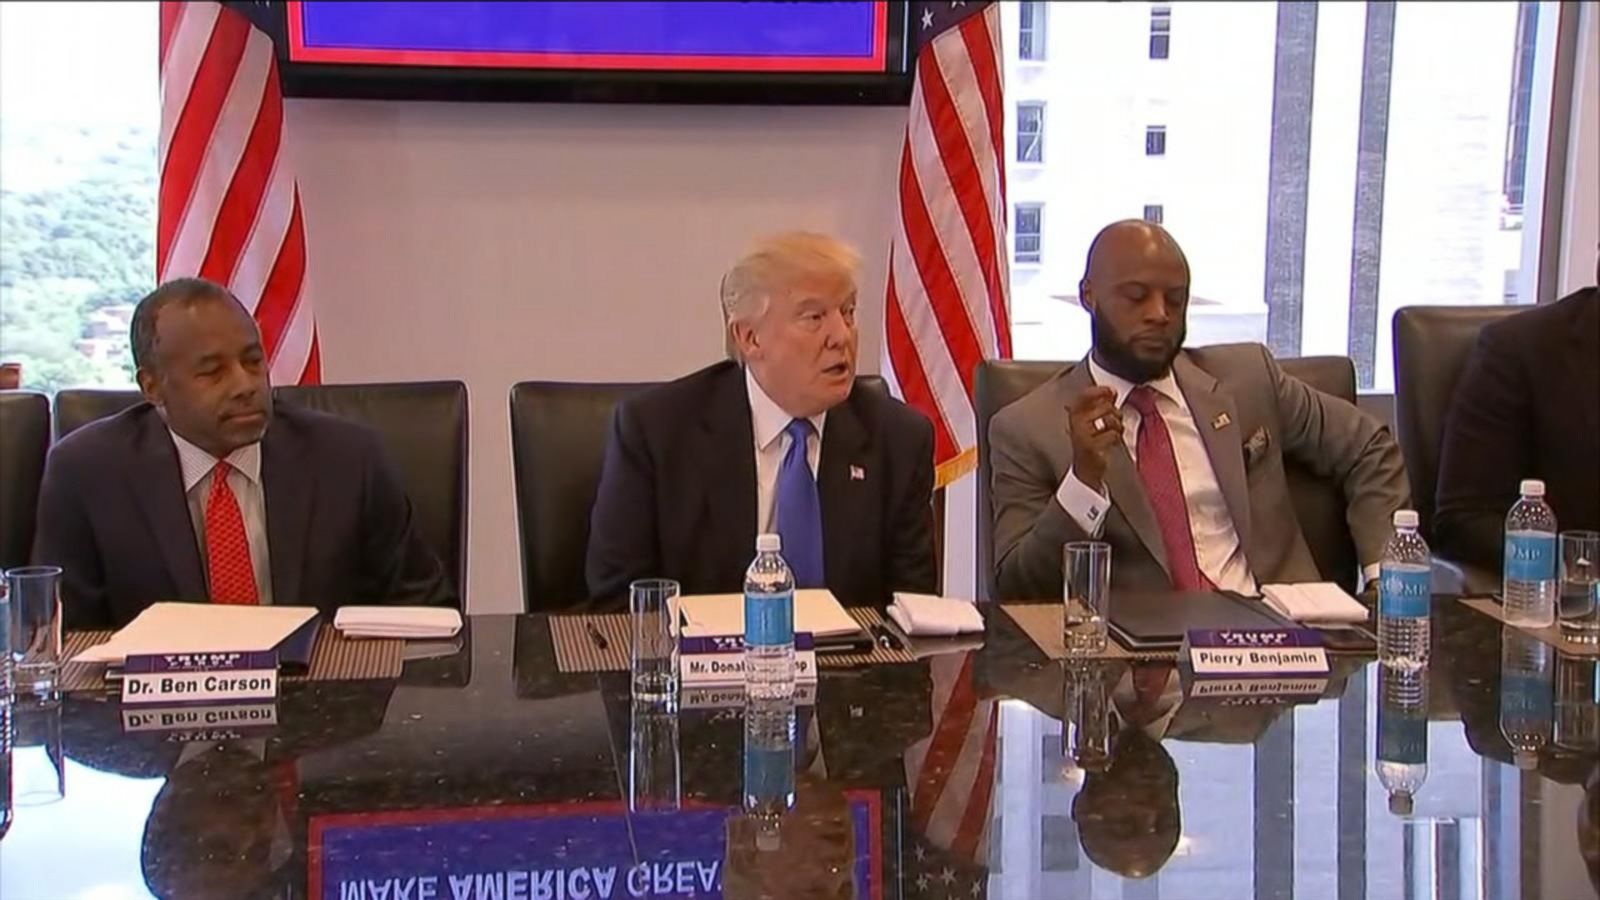 The Republican presidential nominee is meeting with members of the Republican Leadership Initiative at Trump Tower.